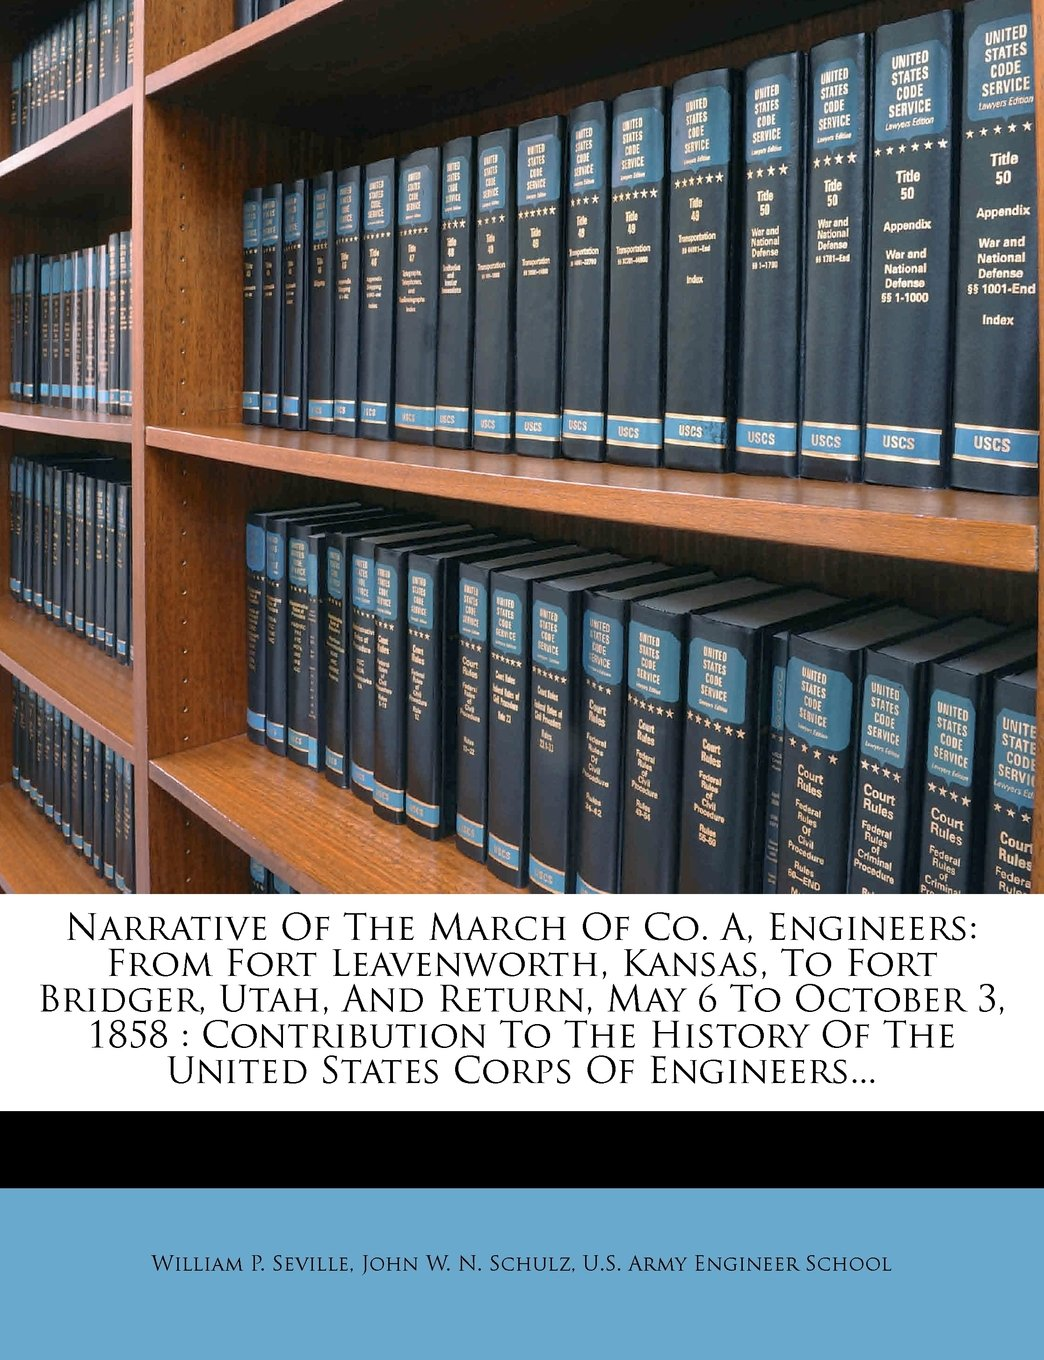 Narrative Of The March Of Co. A, Engineers: From Fort Leavenworth, Kansas, To Fort Bridger, Utah, And Return, May 6 To October 3, 1858 : Contribution ... Of The United States Corps Of Engineers... pdf